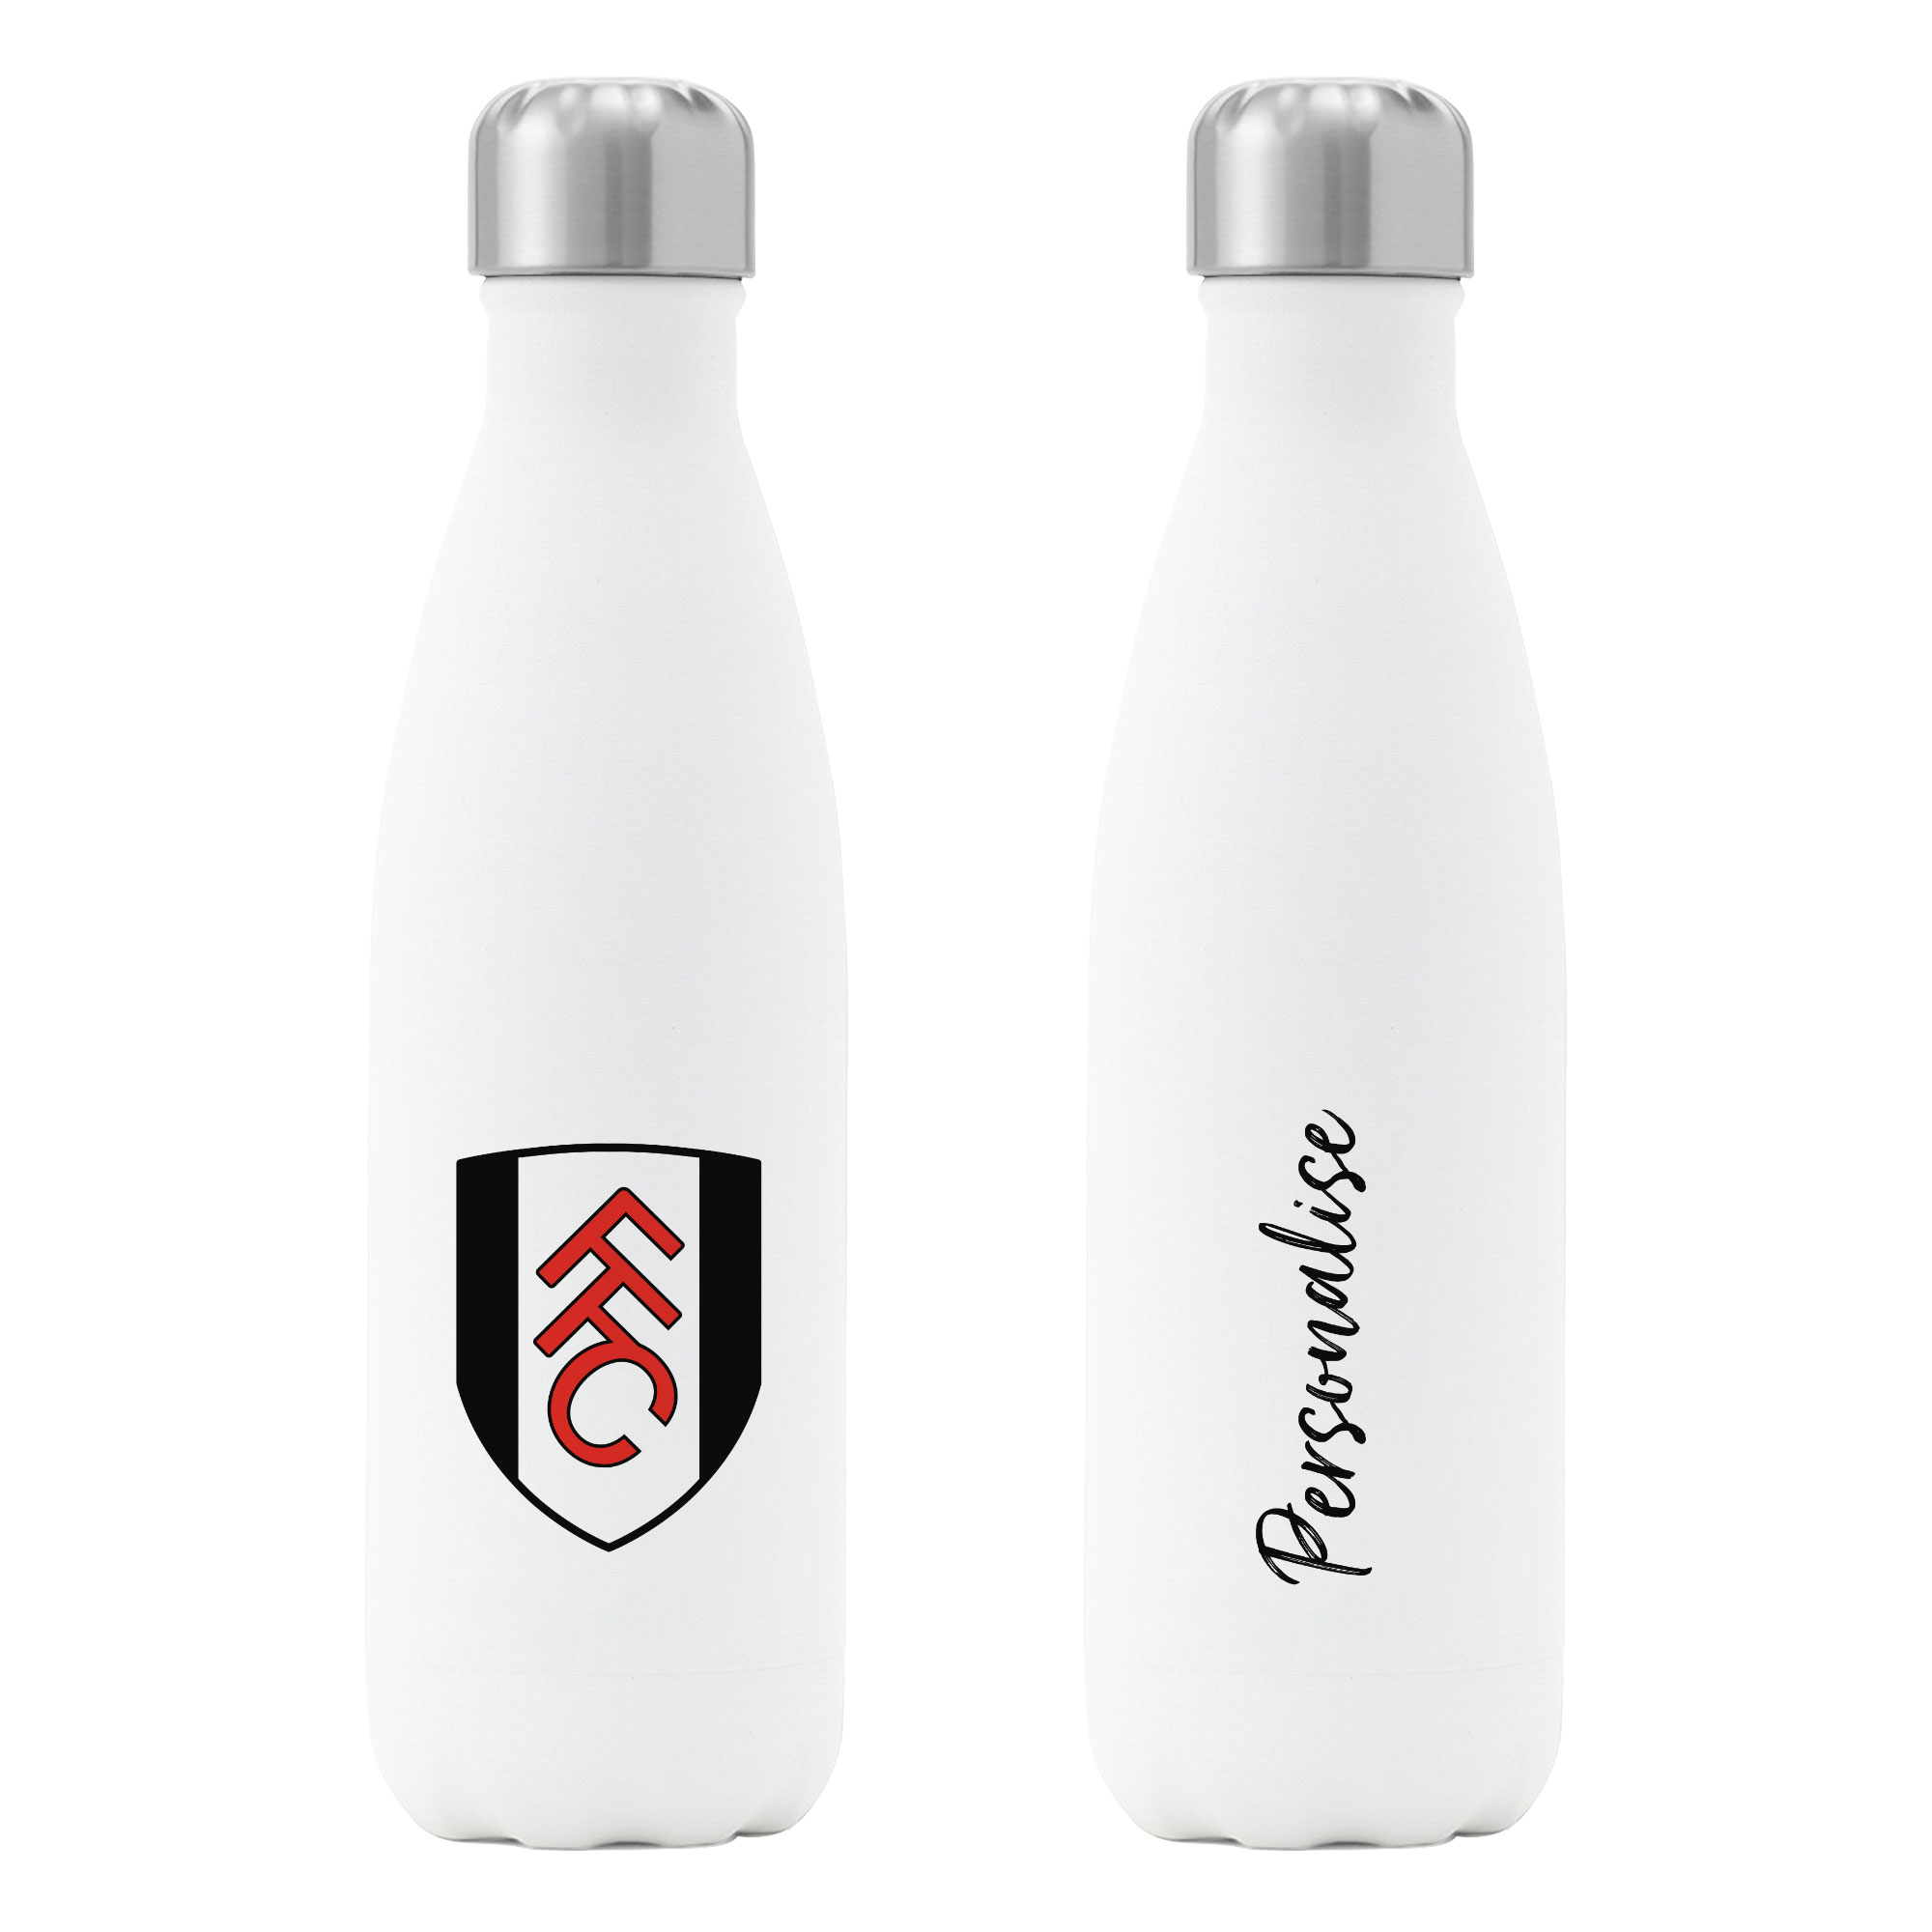 Fulham FC Crest Insulated Water Bottle - White